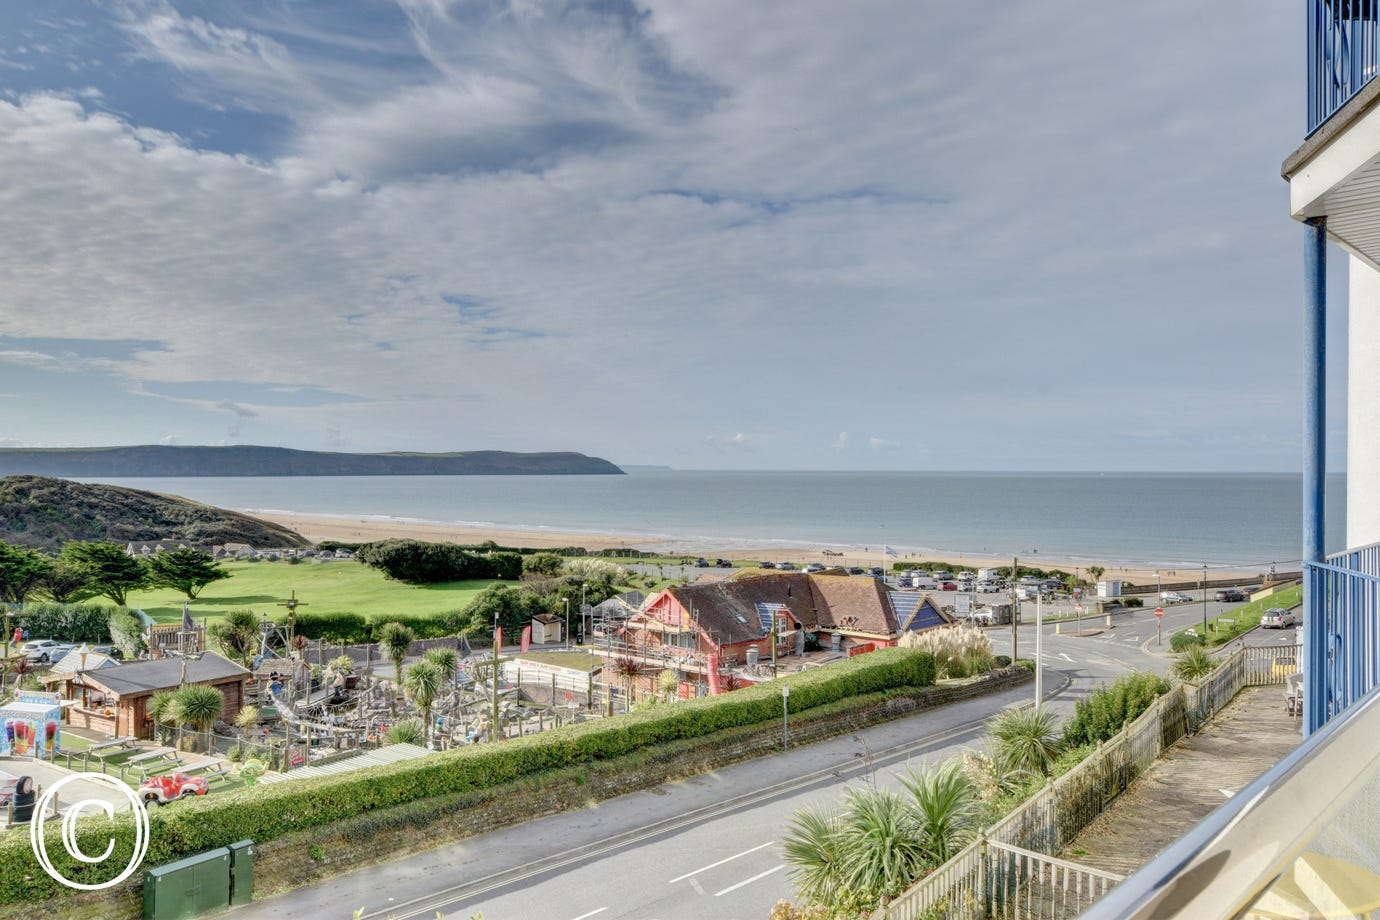 Stunning views out over Woolacombe village and beach